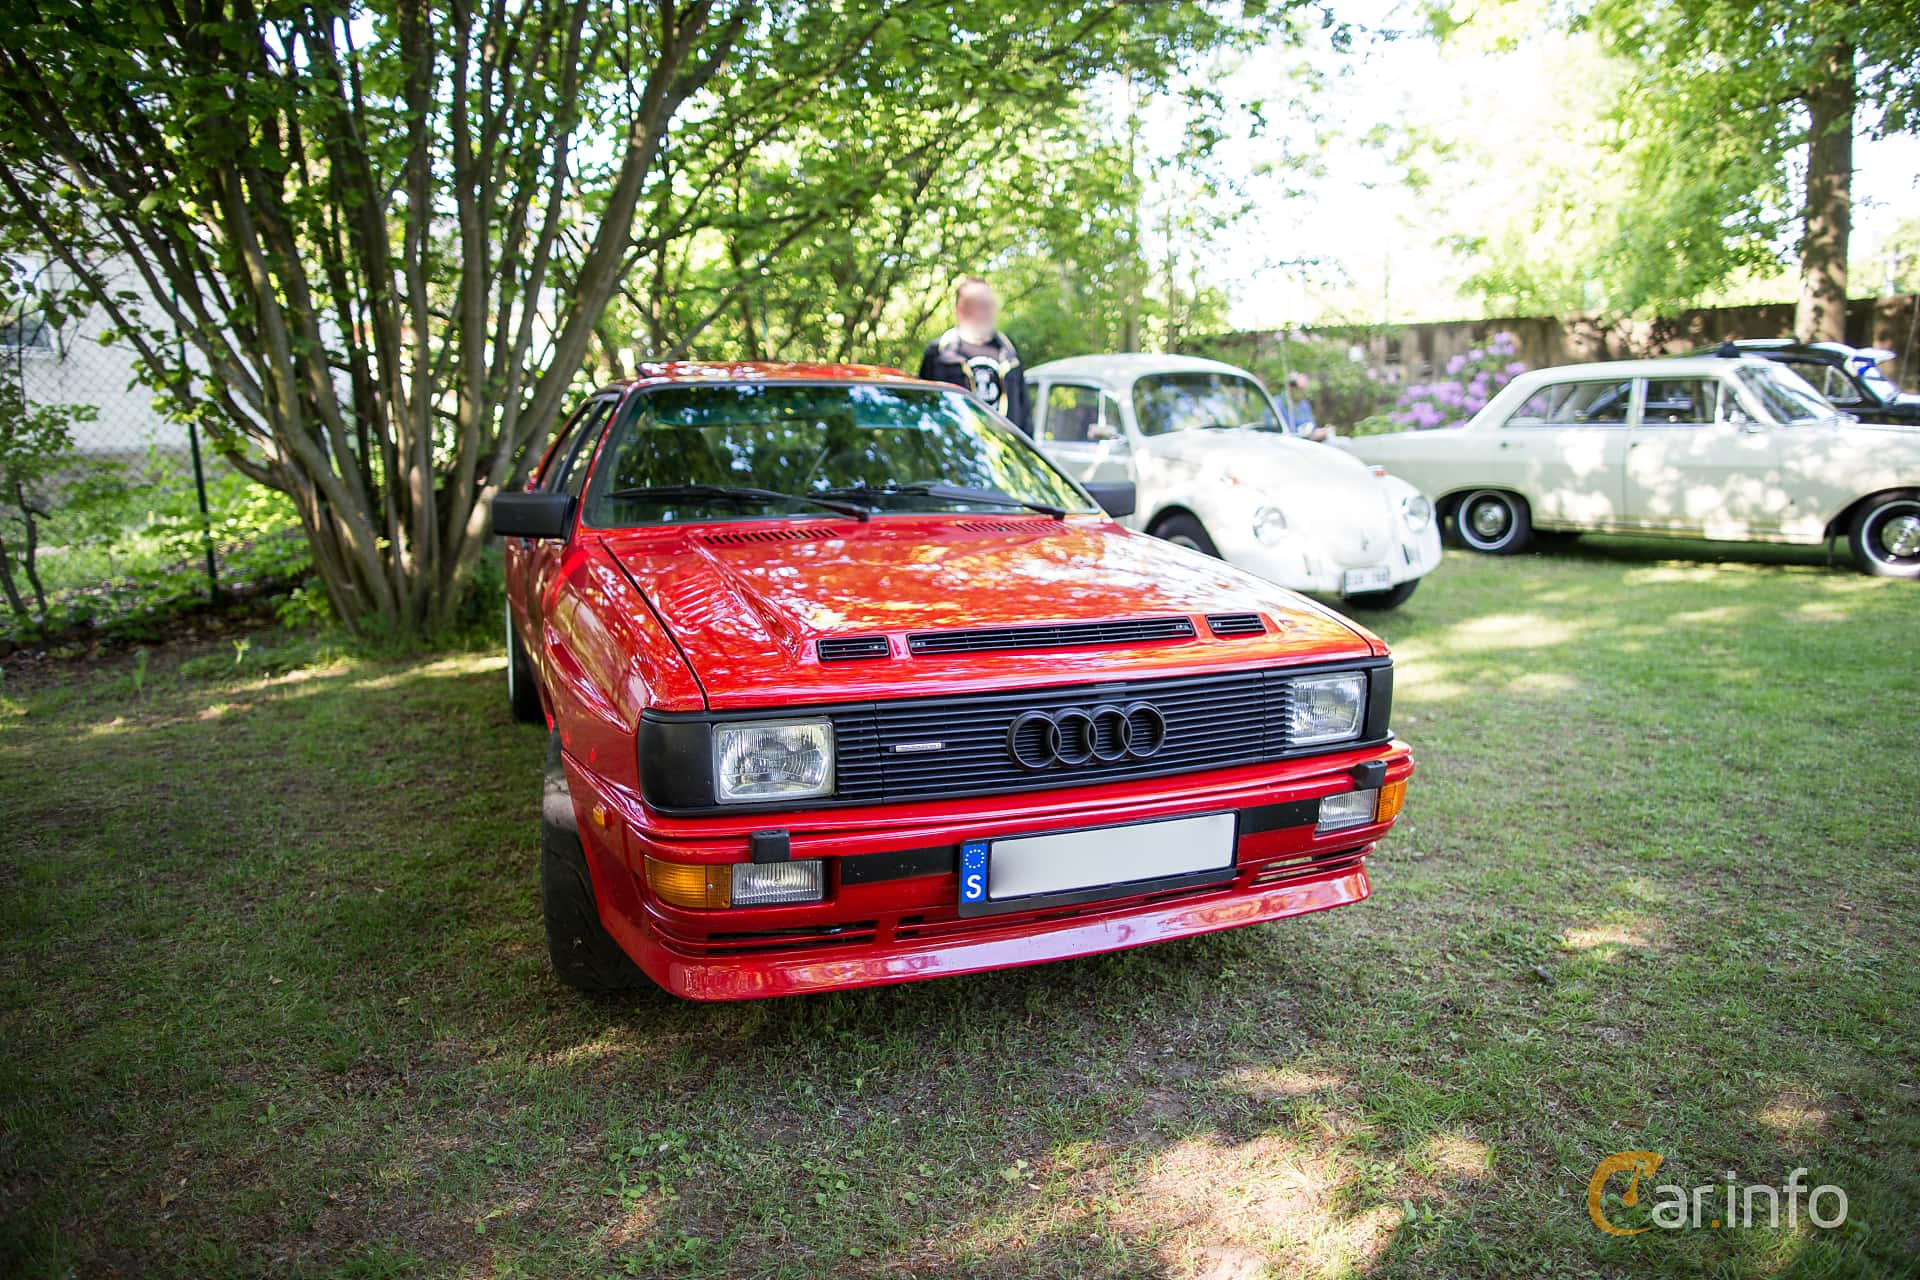 Audi quattro 2.1 quattro Manual, 200hp, 1983 at Billesholms Veteranbilsträff Juni / 2015